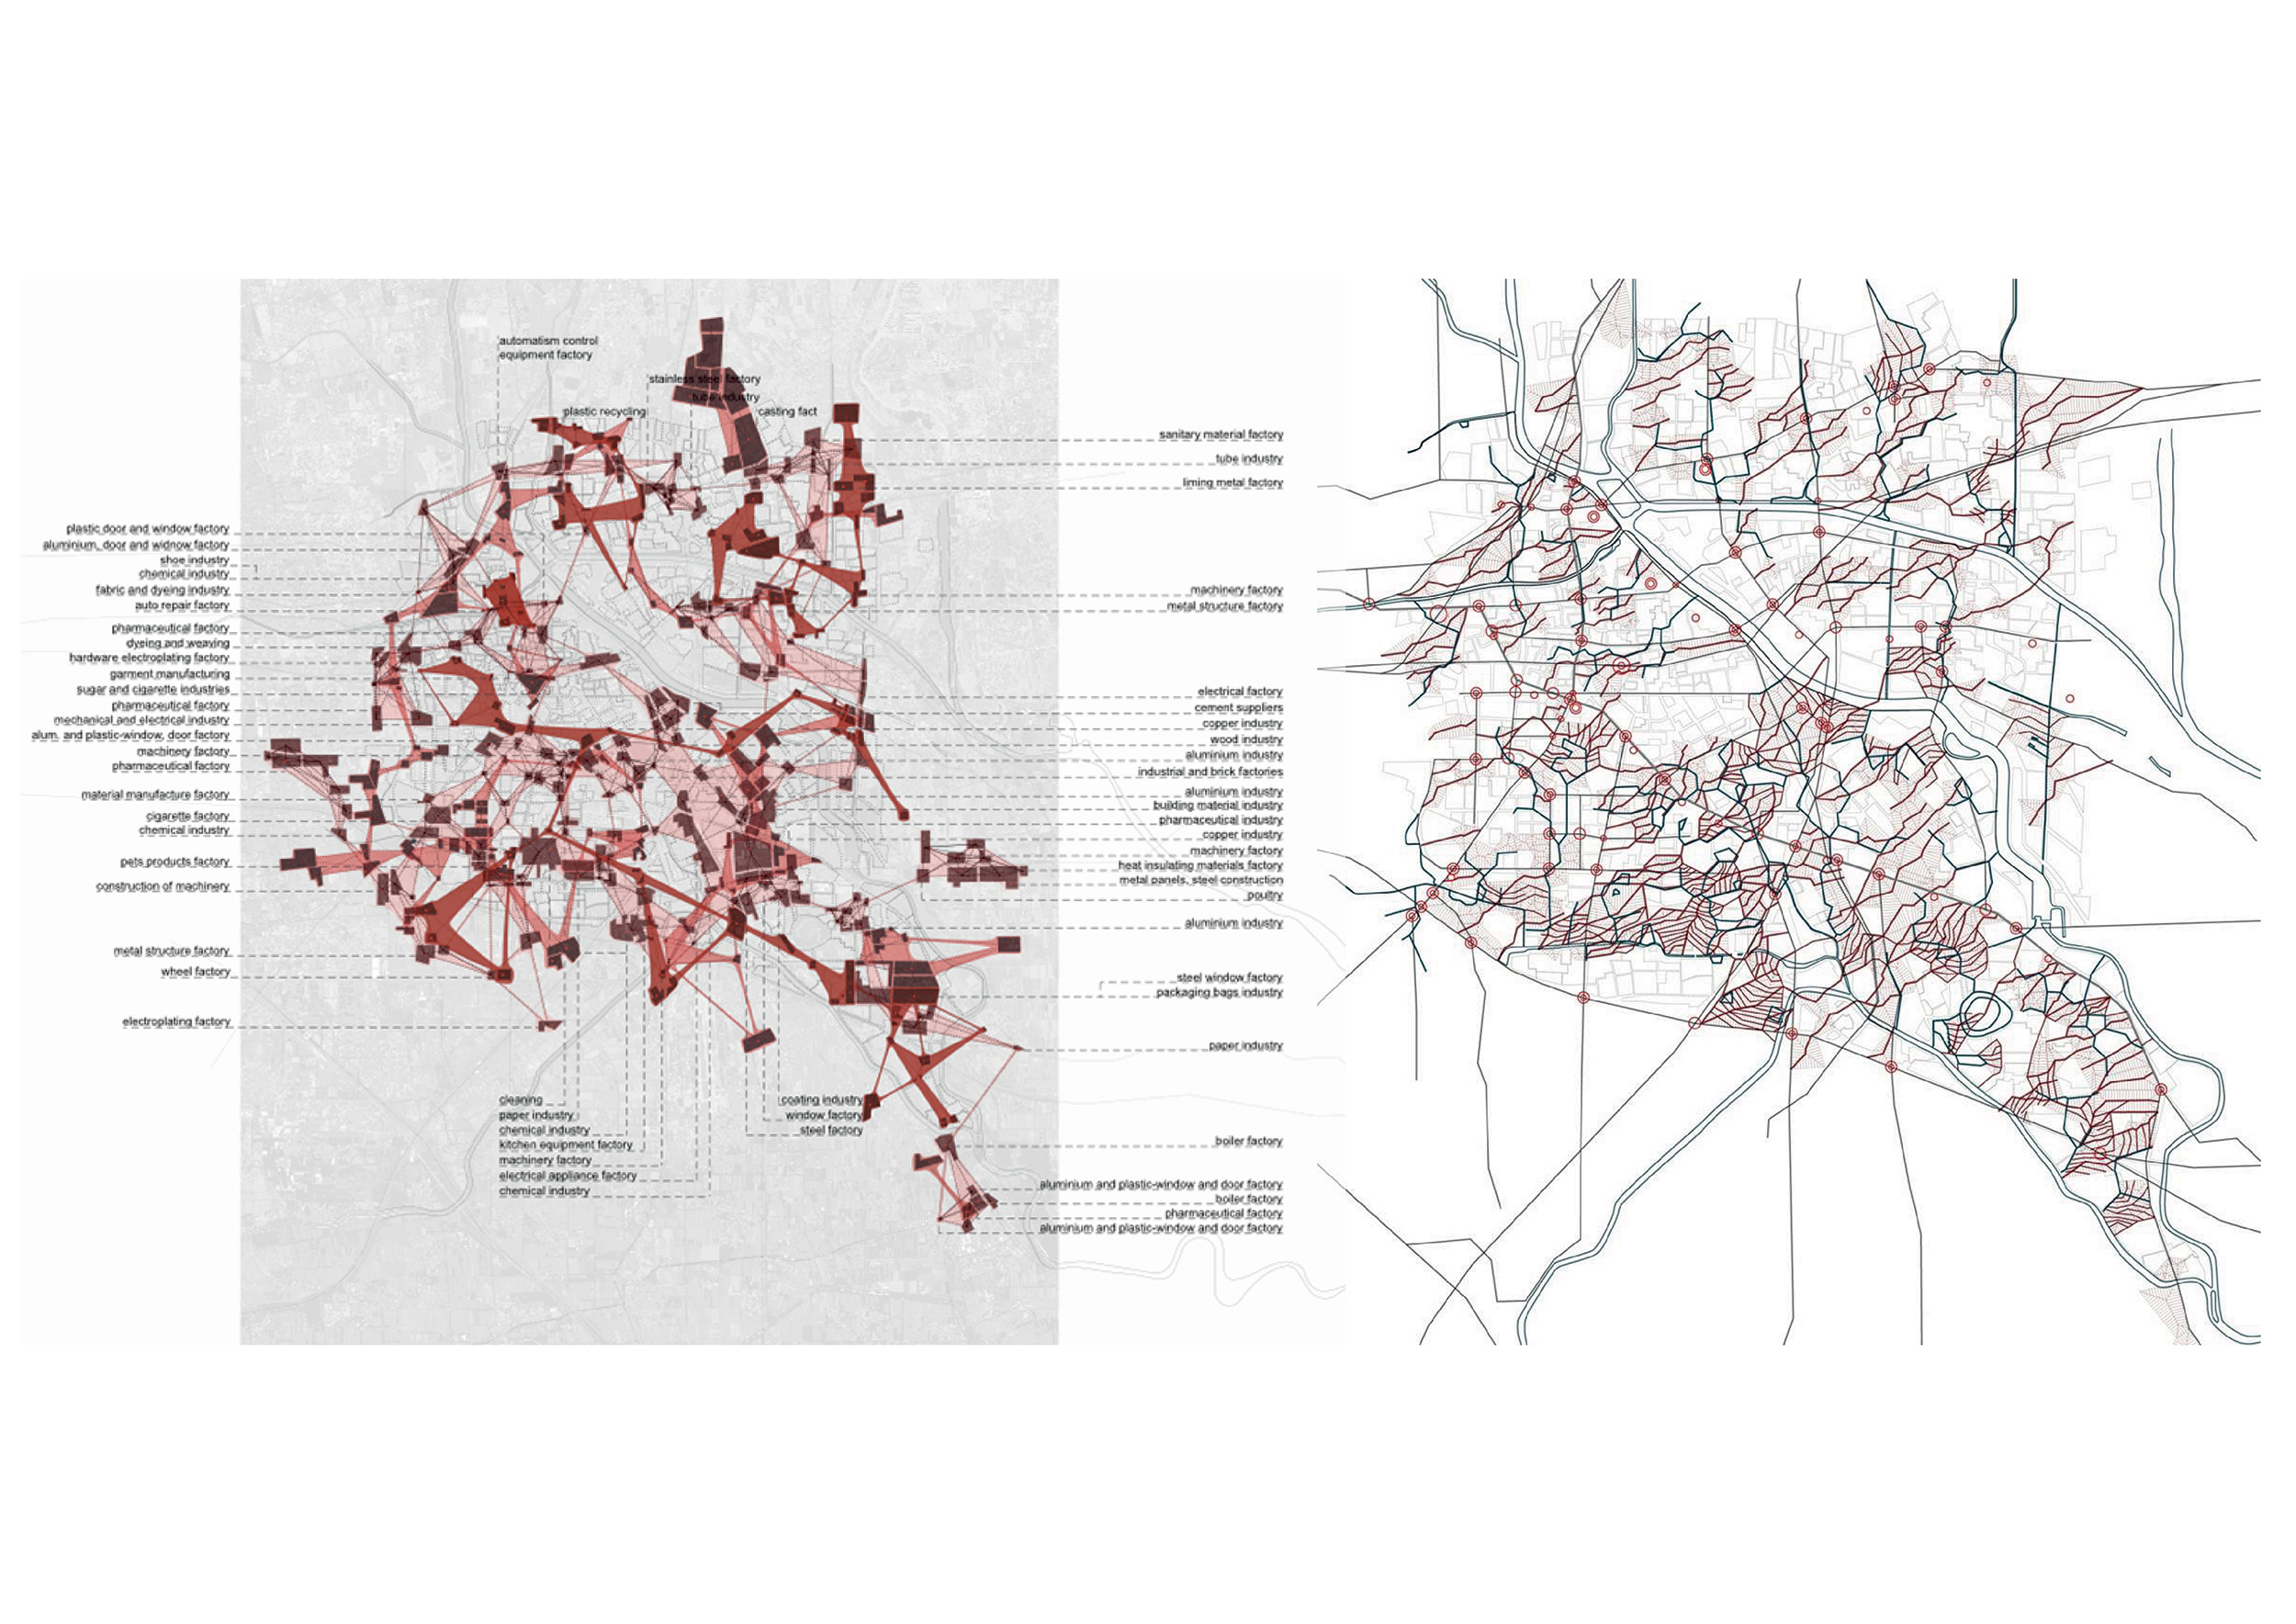 aa school of architecture projects review 2012 - landscape urbanism - tailored scapes